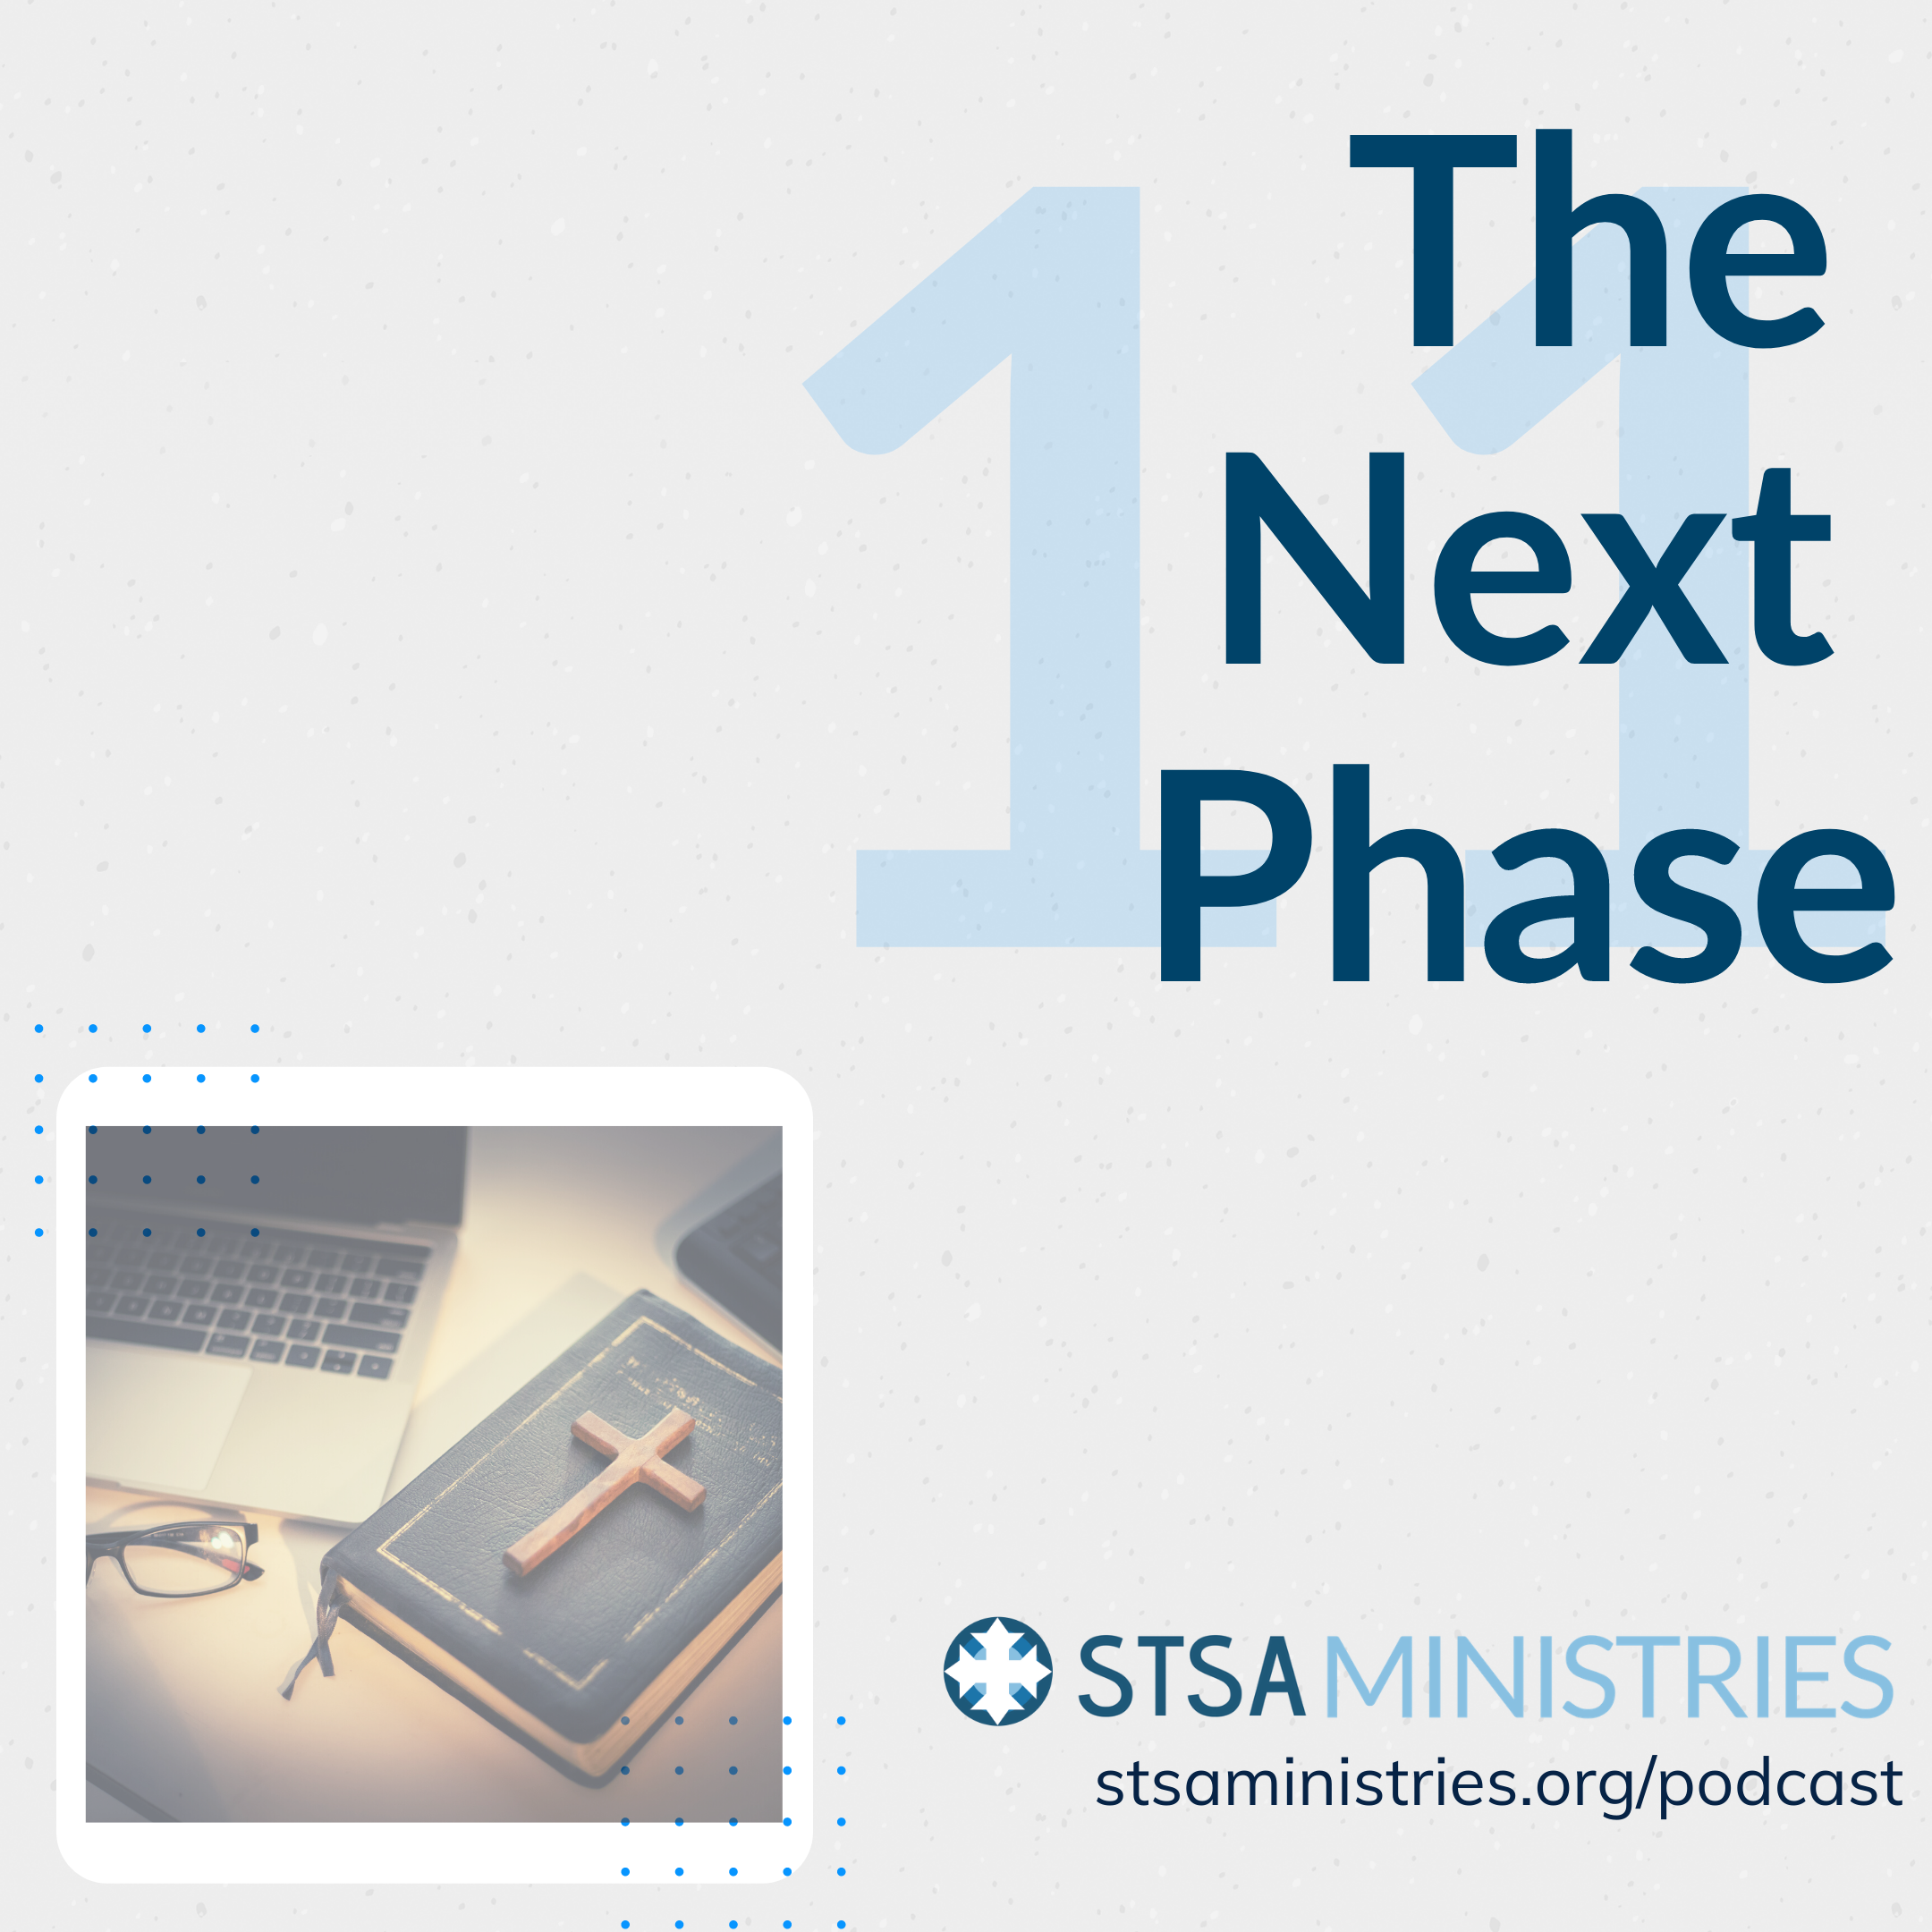 The Next Phase